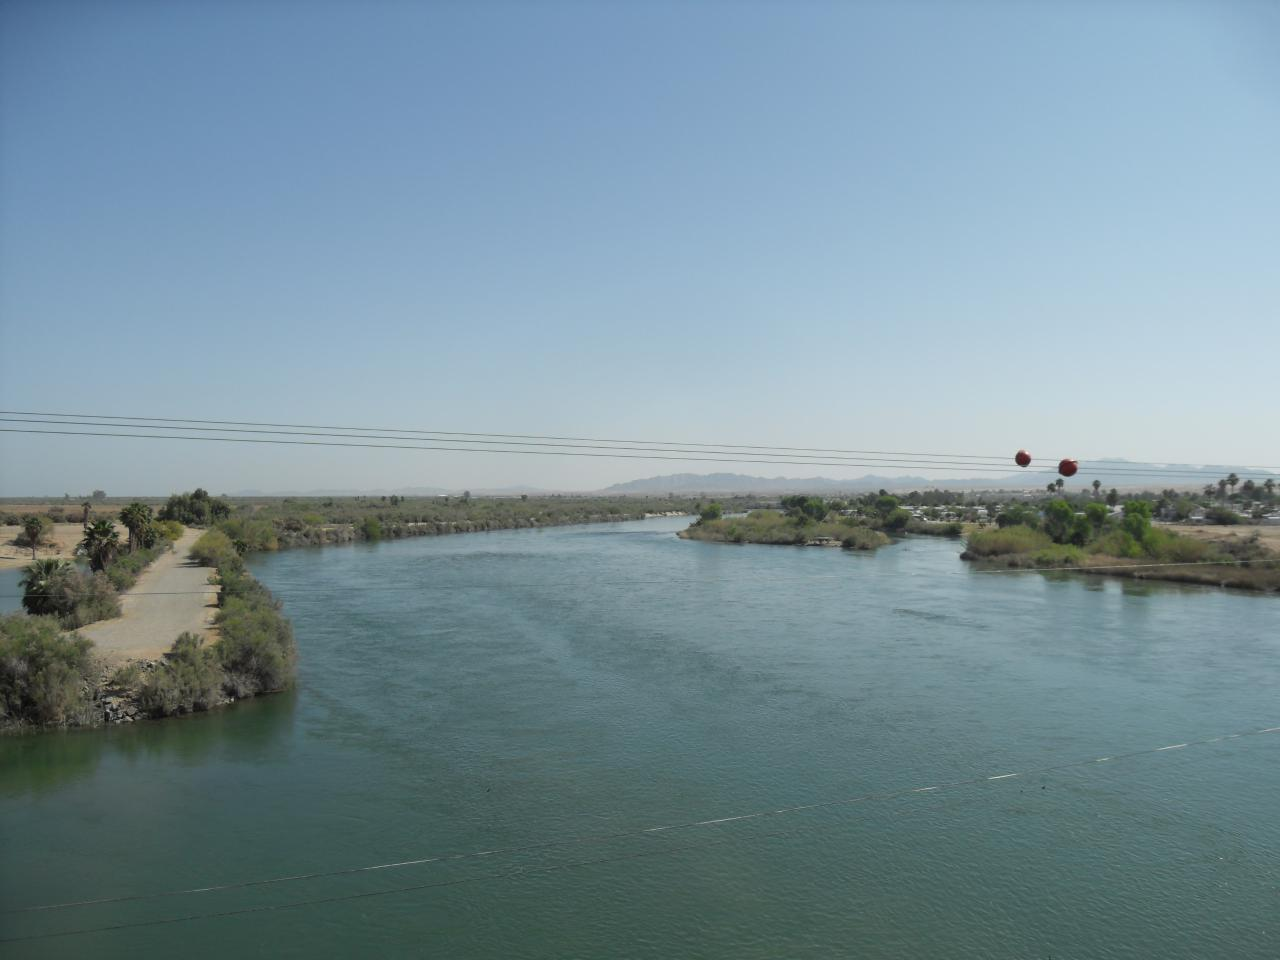 Crossing the Colorado River by bicycle